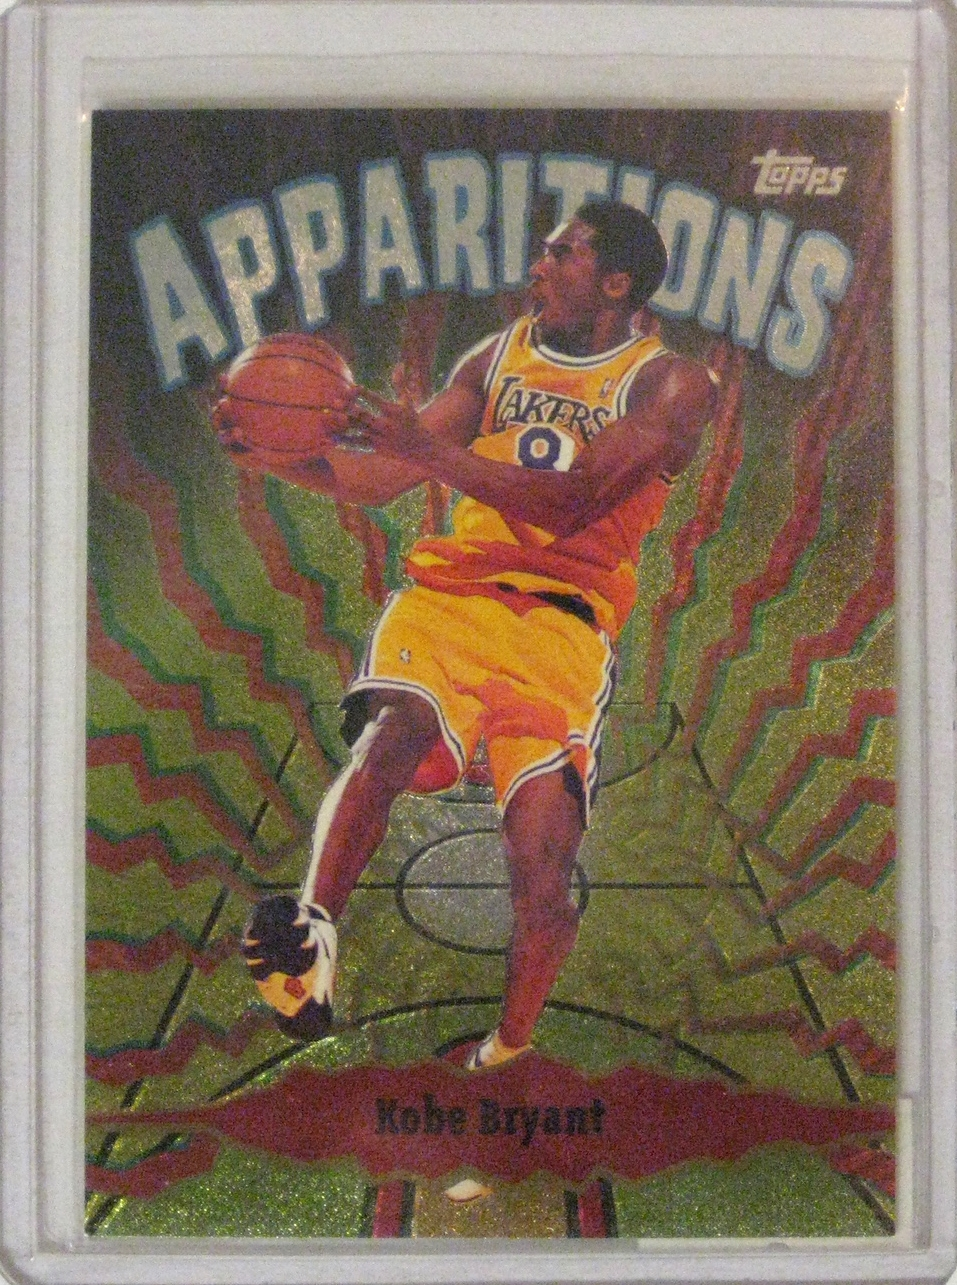 1998-99 Topps Apparitions Kobe Bryant: This is the exact type of card I look to collect. Bright, interesting style, early career... Fun stuff.